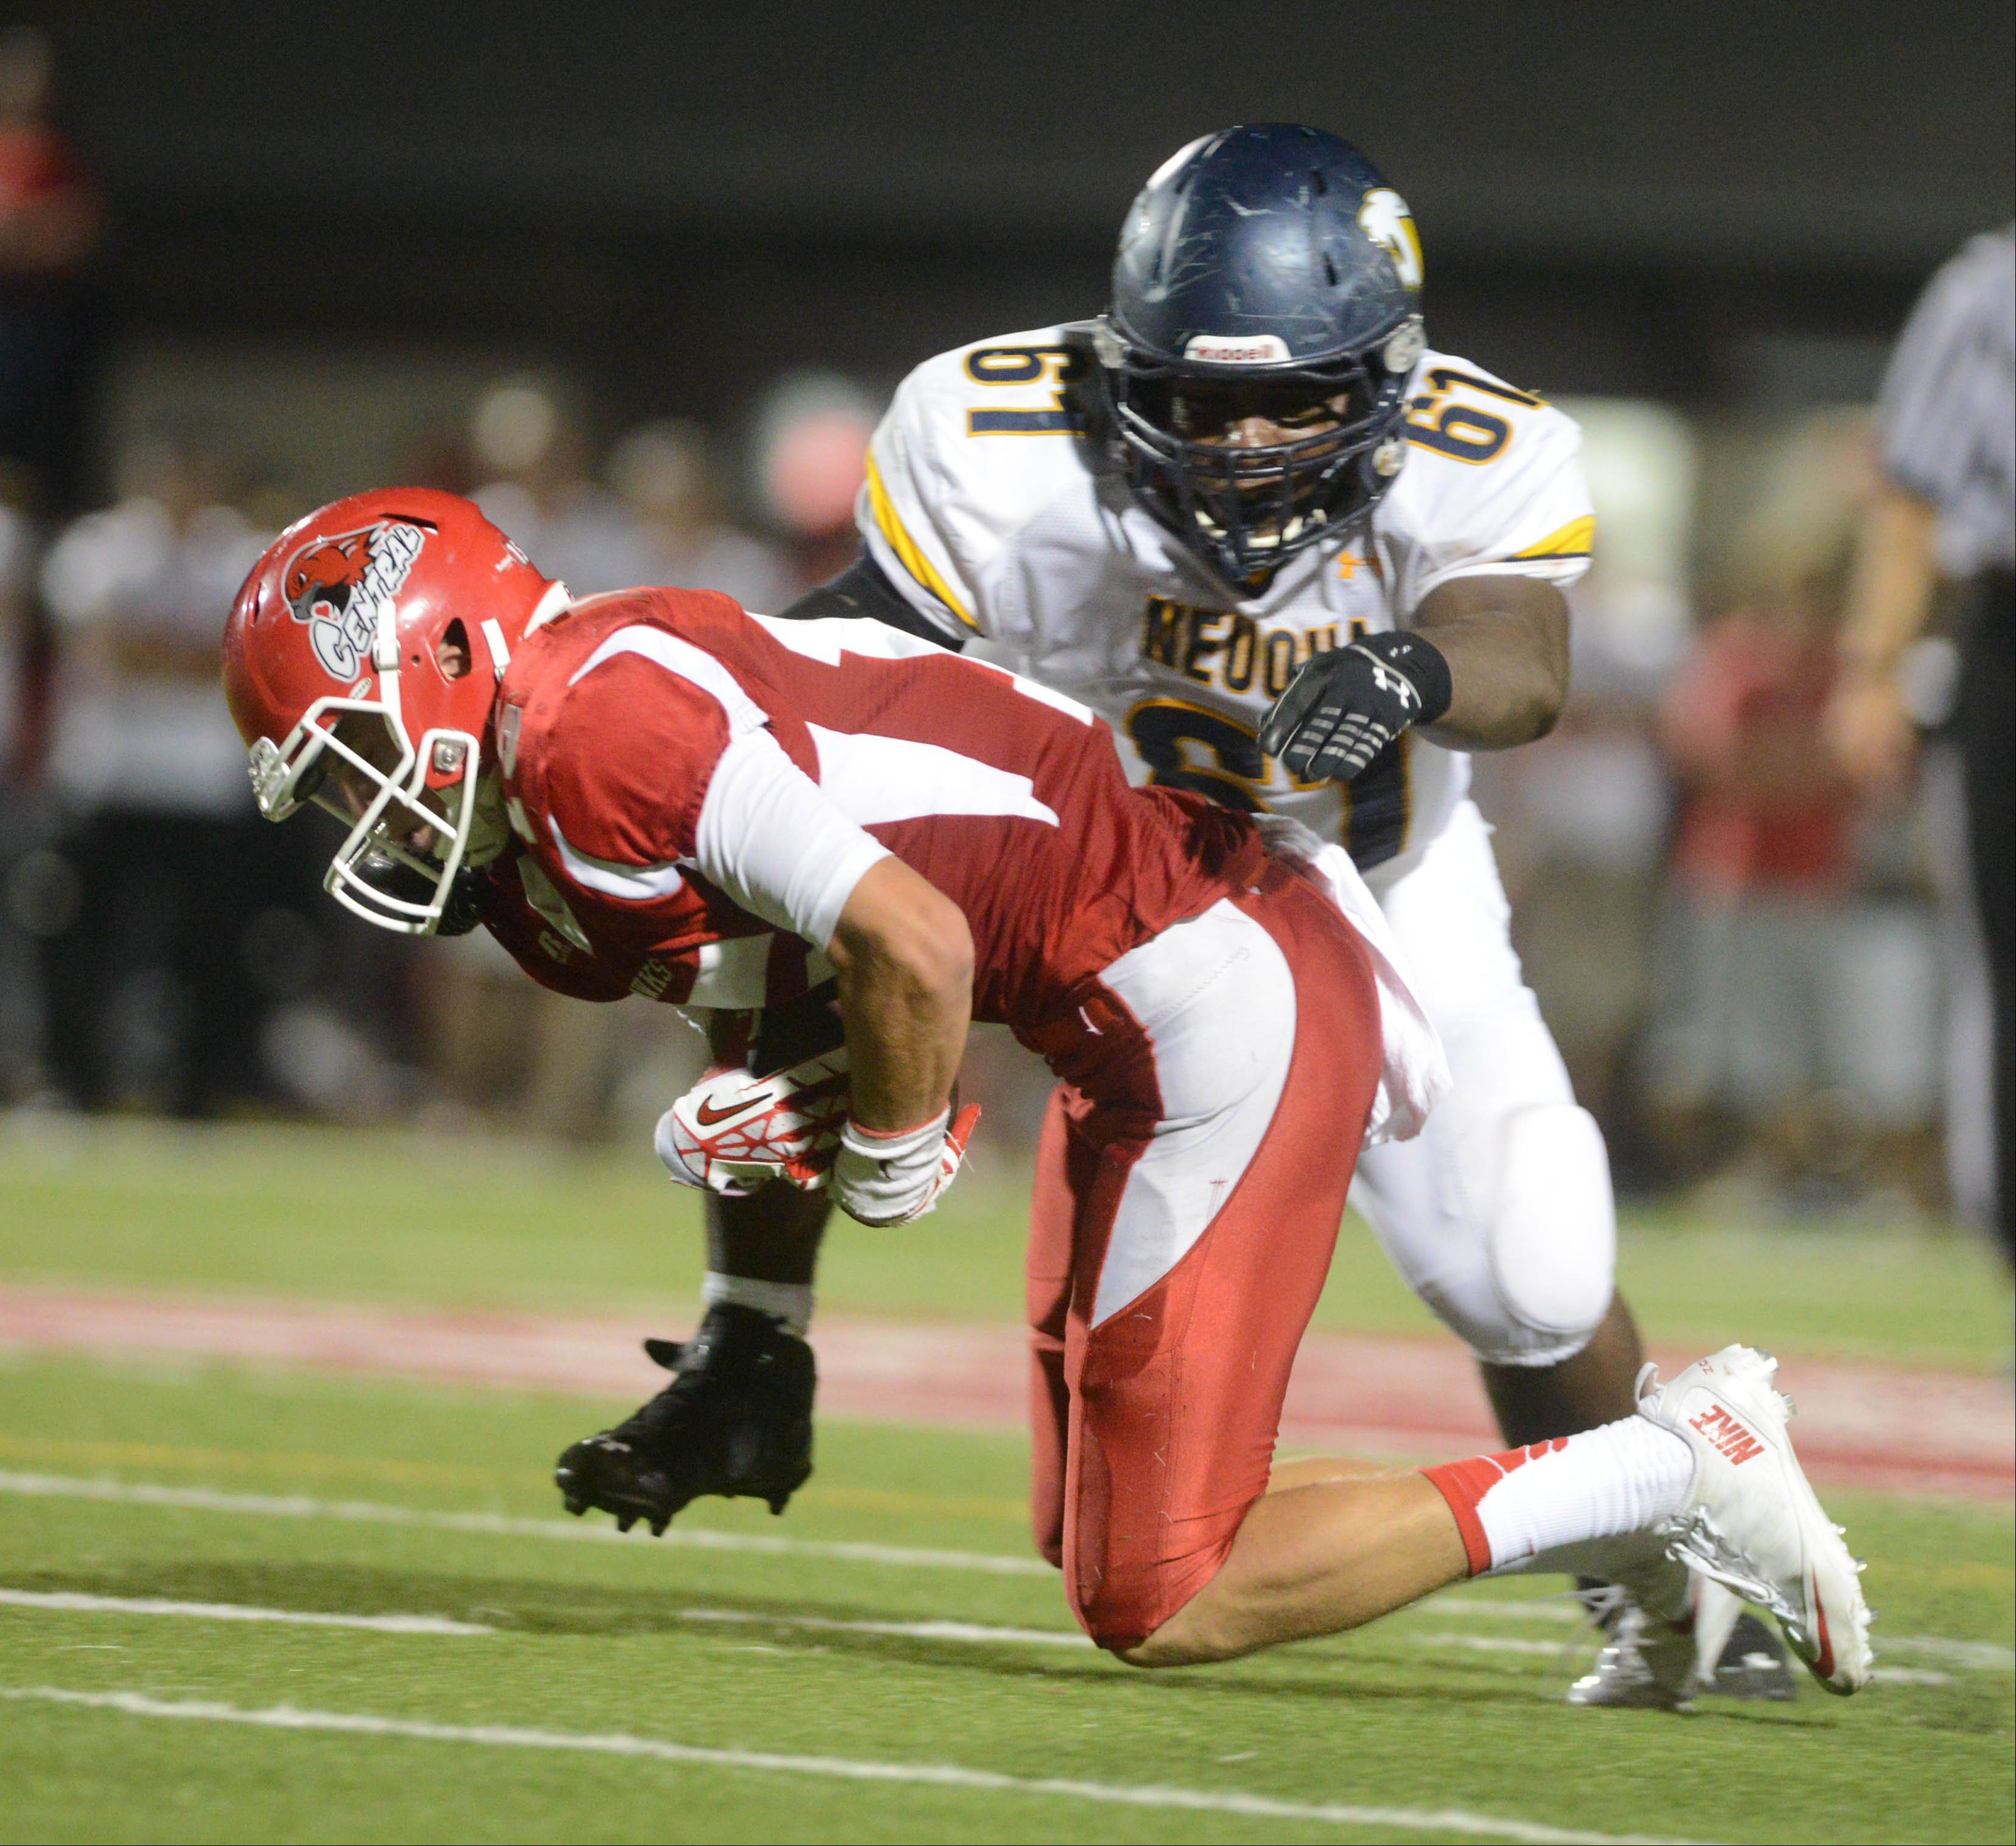 Michael Kolzow of Naperville central,left, is pulled down by Godfrey Collins of Neuqua Valley during game action Friday in Naperville.